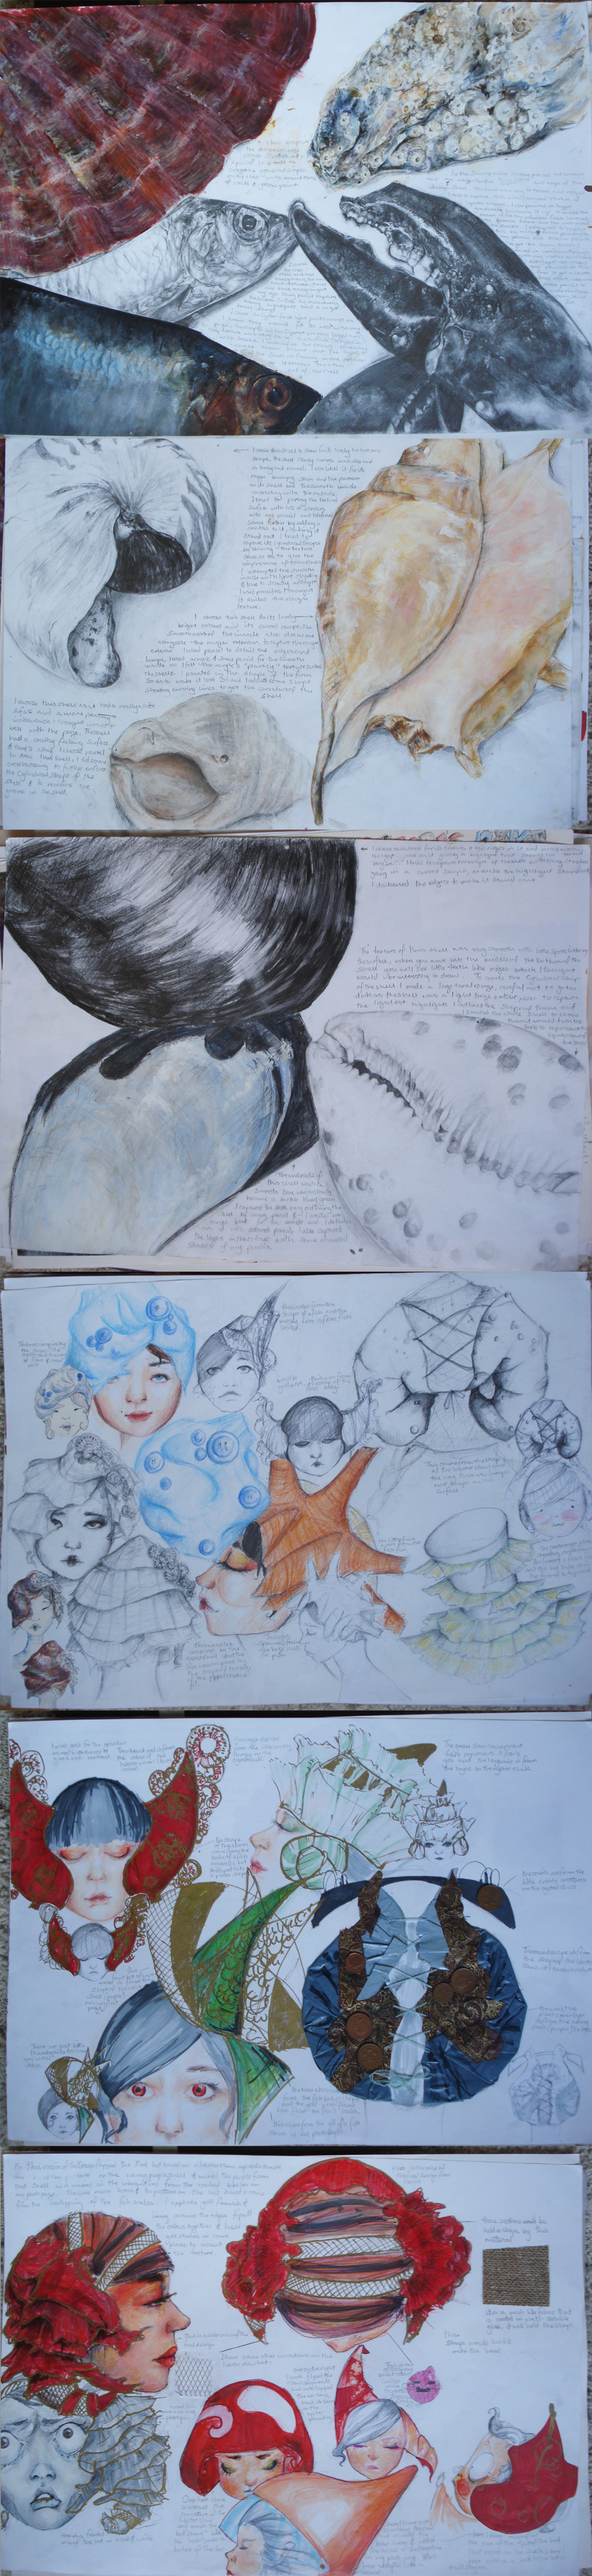 gcse art and design coursework Gcse correspondence courses for gcse correspondence course this college is one of the few places which offers correspondence courses for art and design.